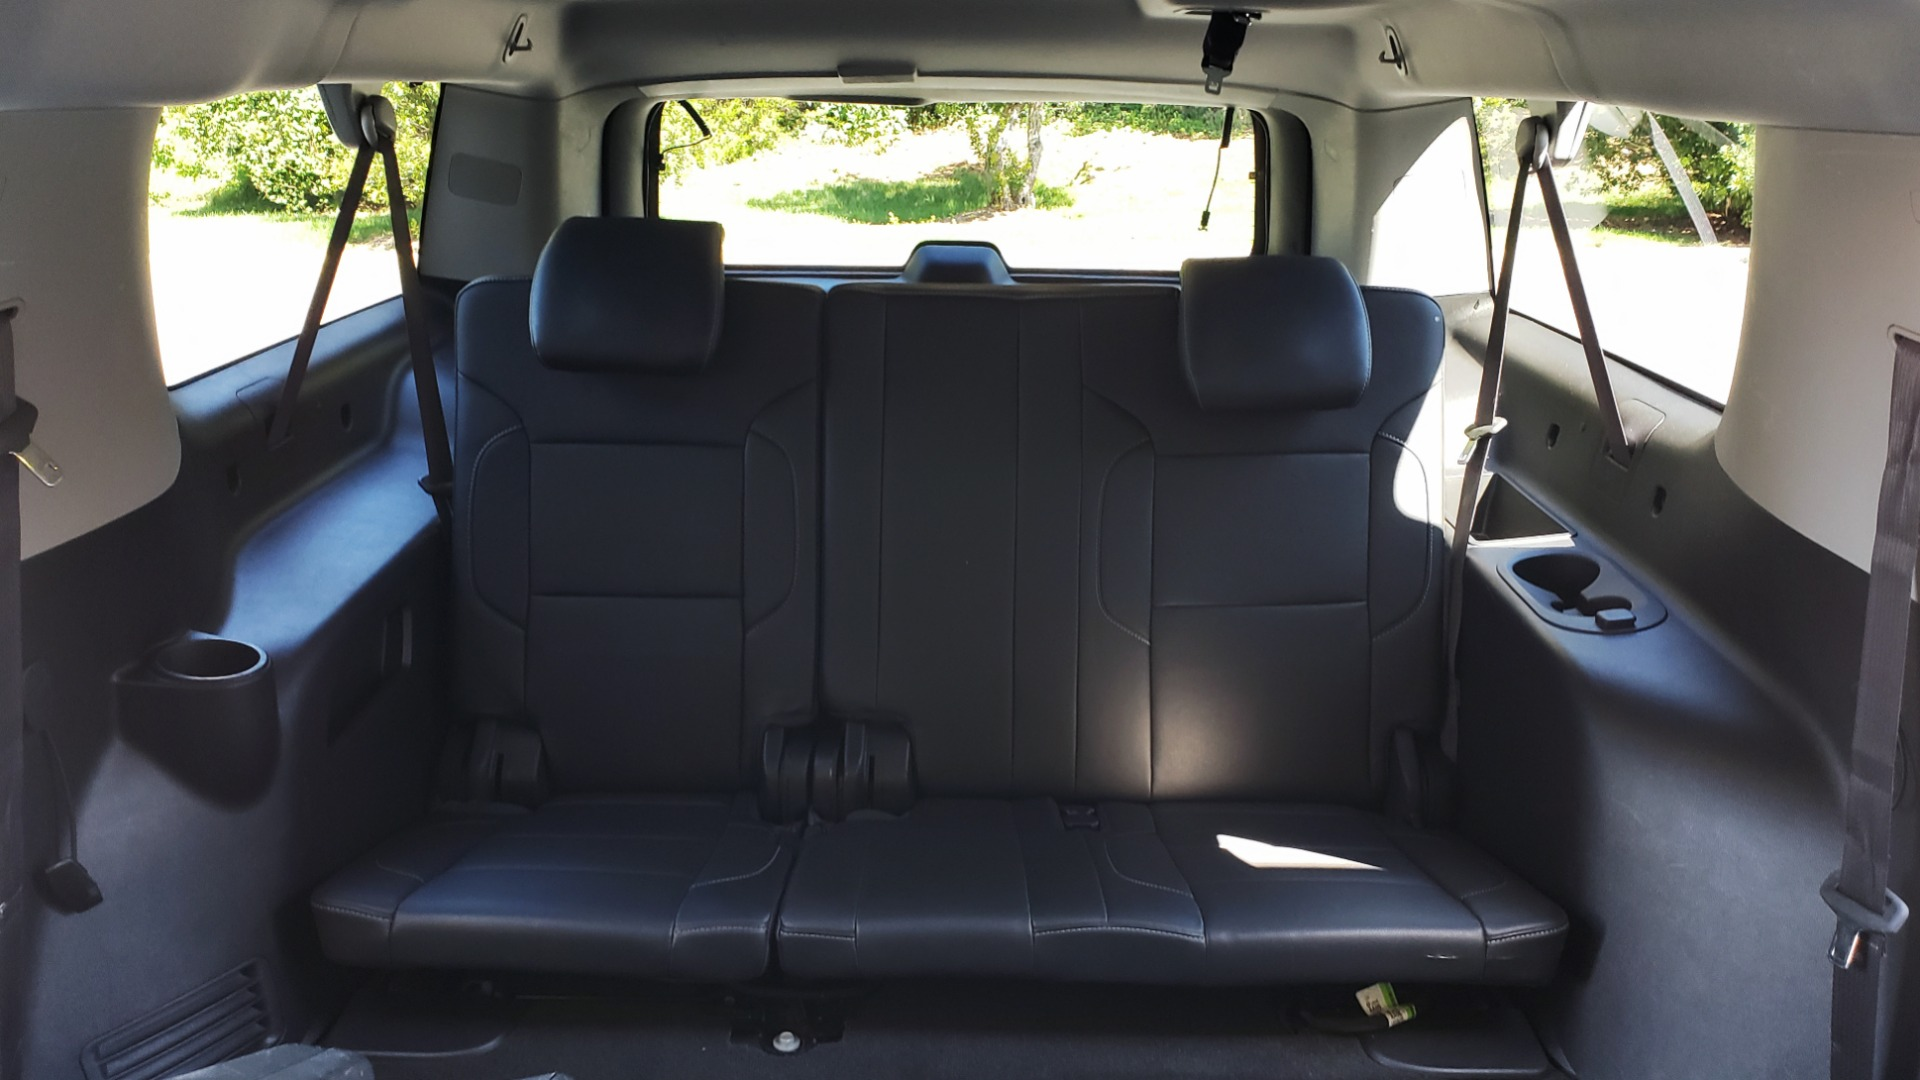 Used 2016 GMC YUKON XL SLT / NAV / BOSE / 3-ROWS - SEATS 8 / REARVIEW for sale Sold at Formula Imports in Charlotte NC 28227 88